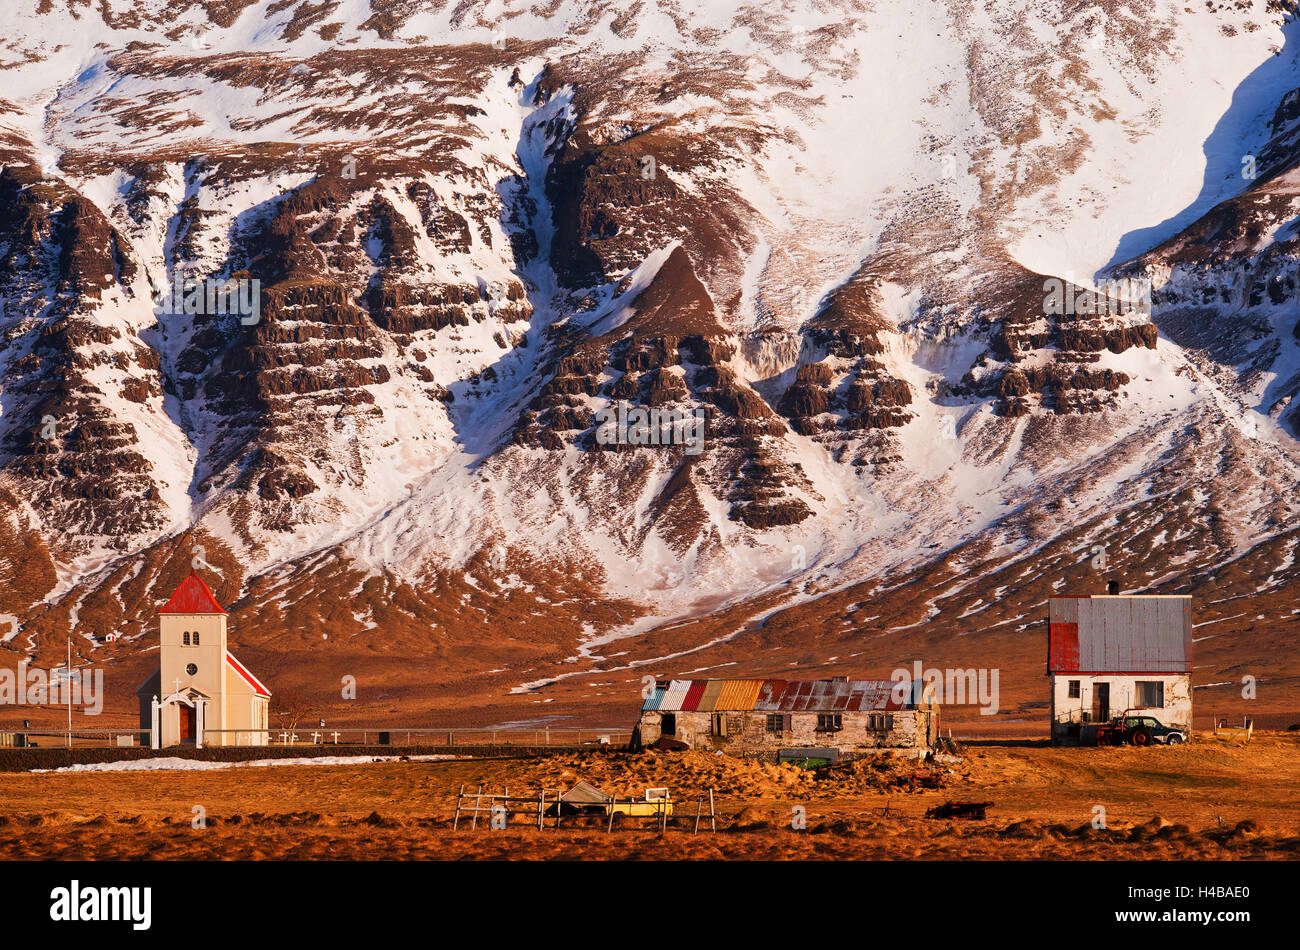 Village Idyll in the southwest of Iceland - Stock Image